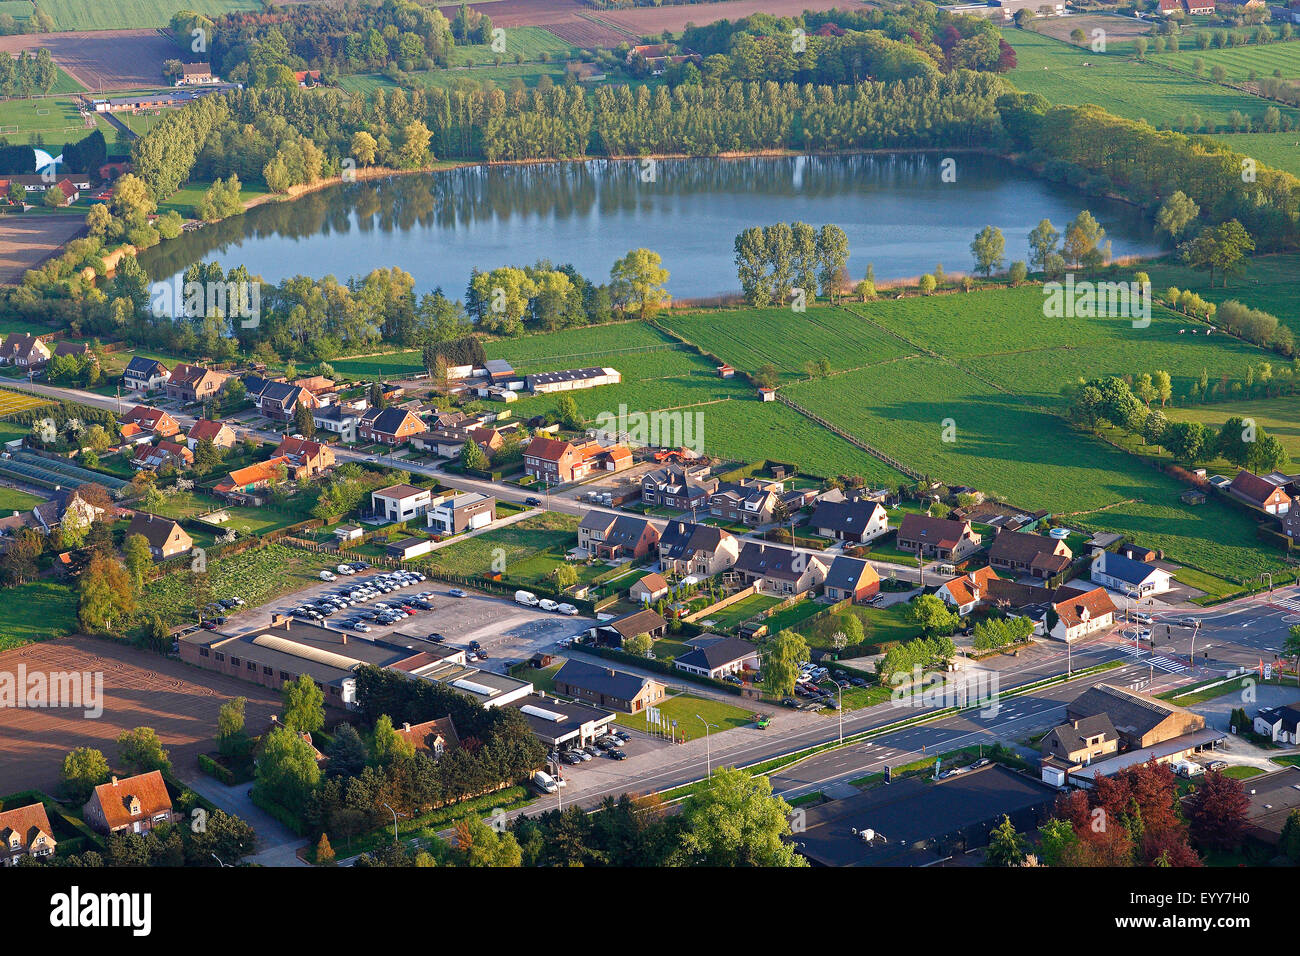 lake, urbanisation at the border of agricultural area from the air, Belgium - Stock Image